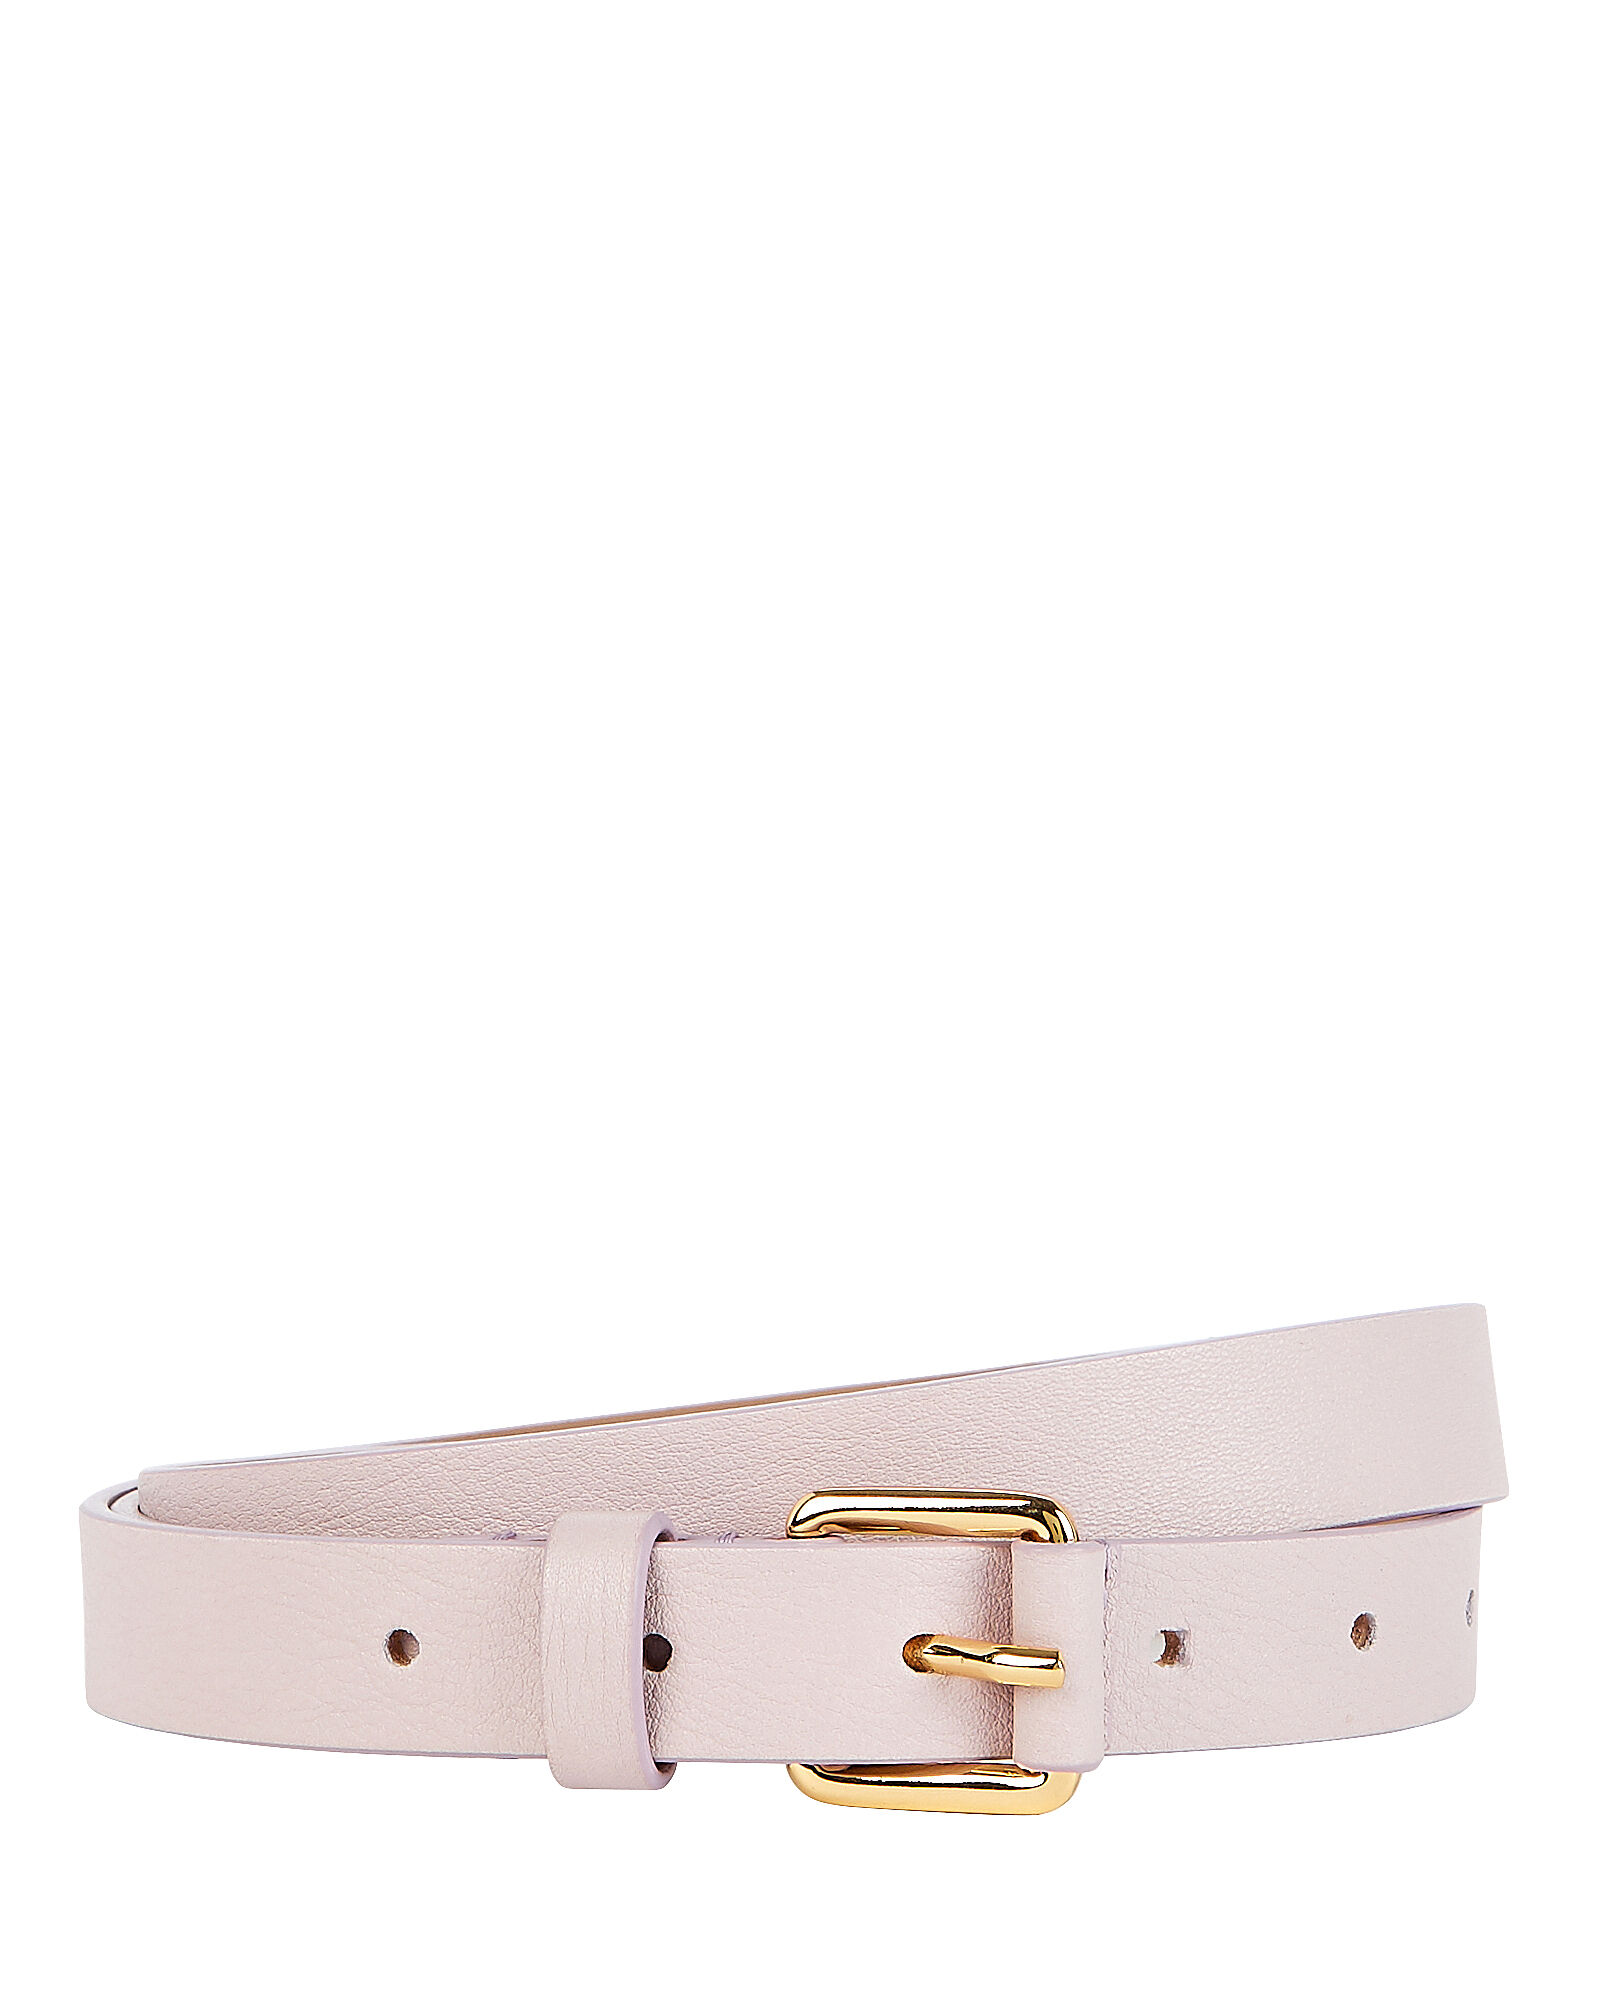 Ivy Thin Leather Waist Belt, LILAC, hi-res